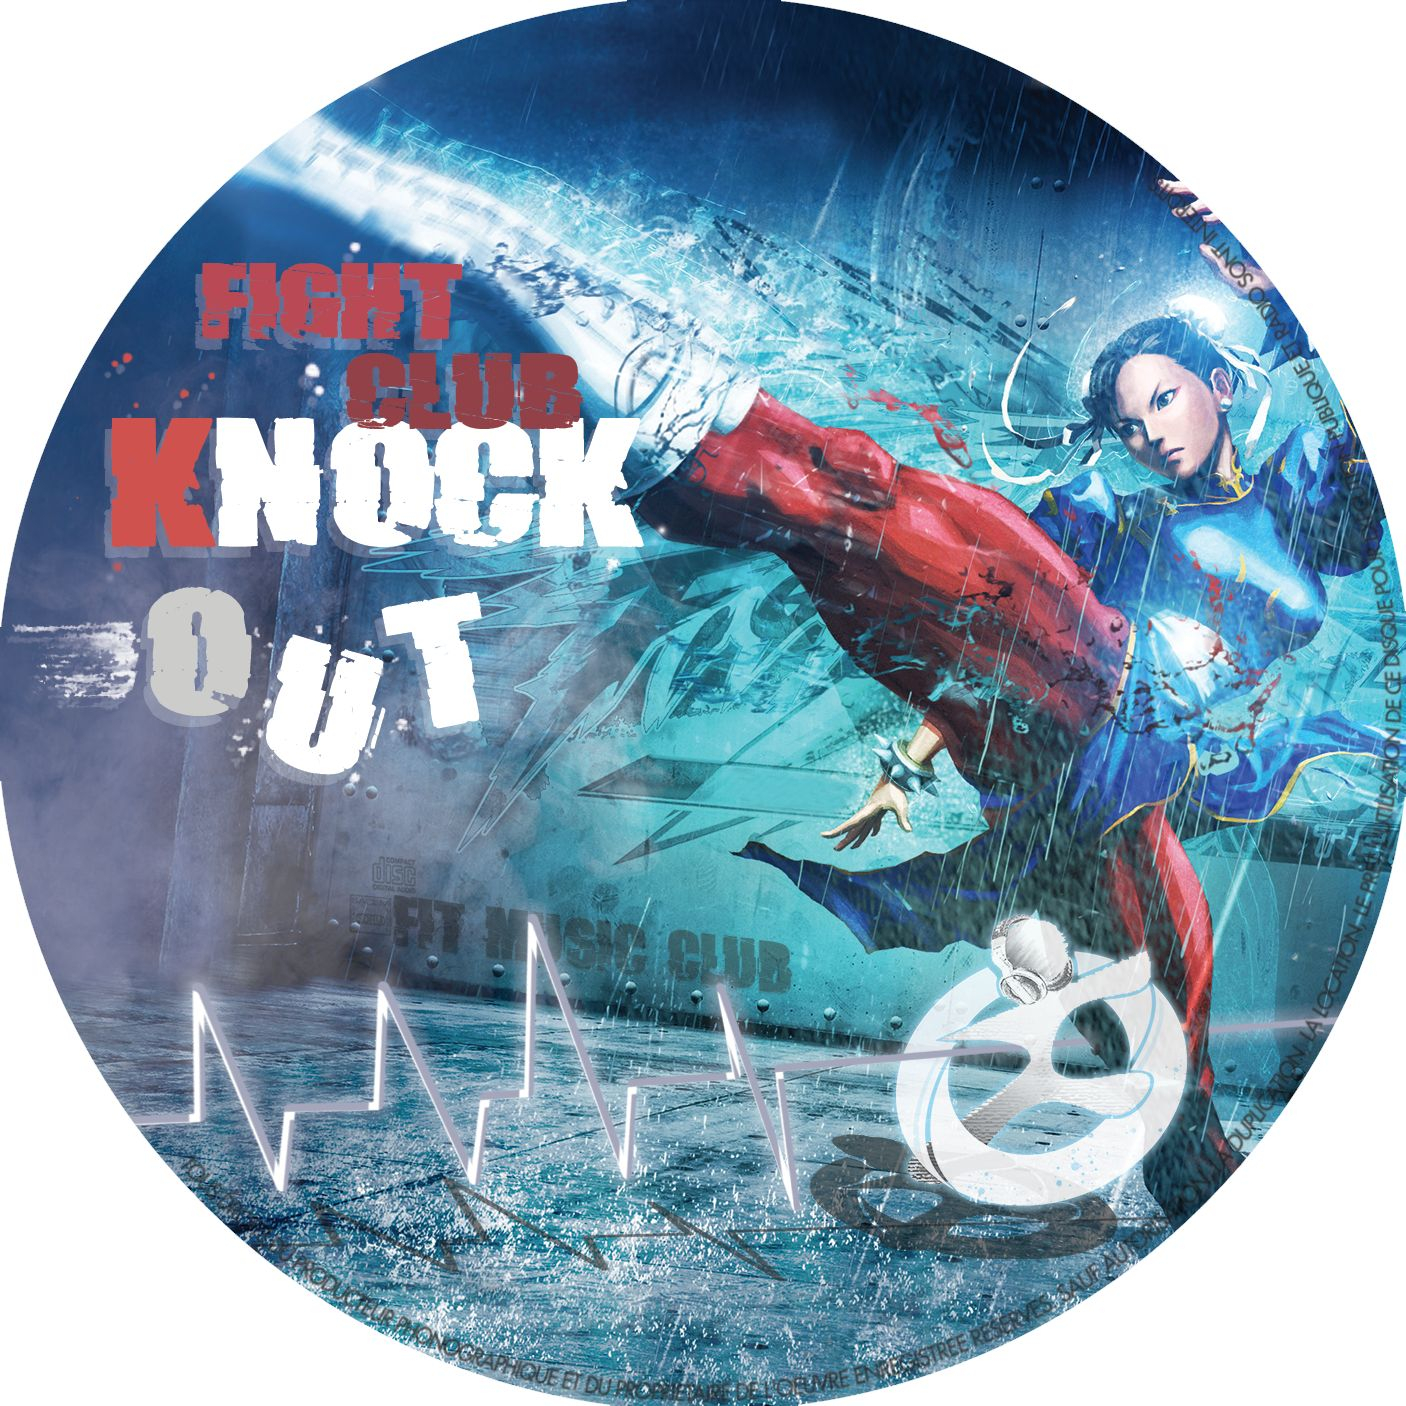 FIGHT CLUB – KNOCK OUT – CD